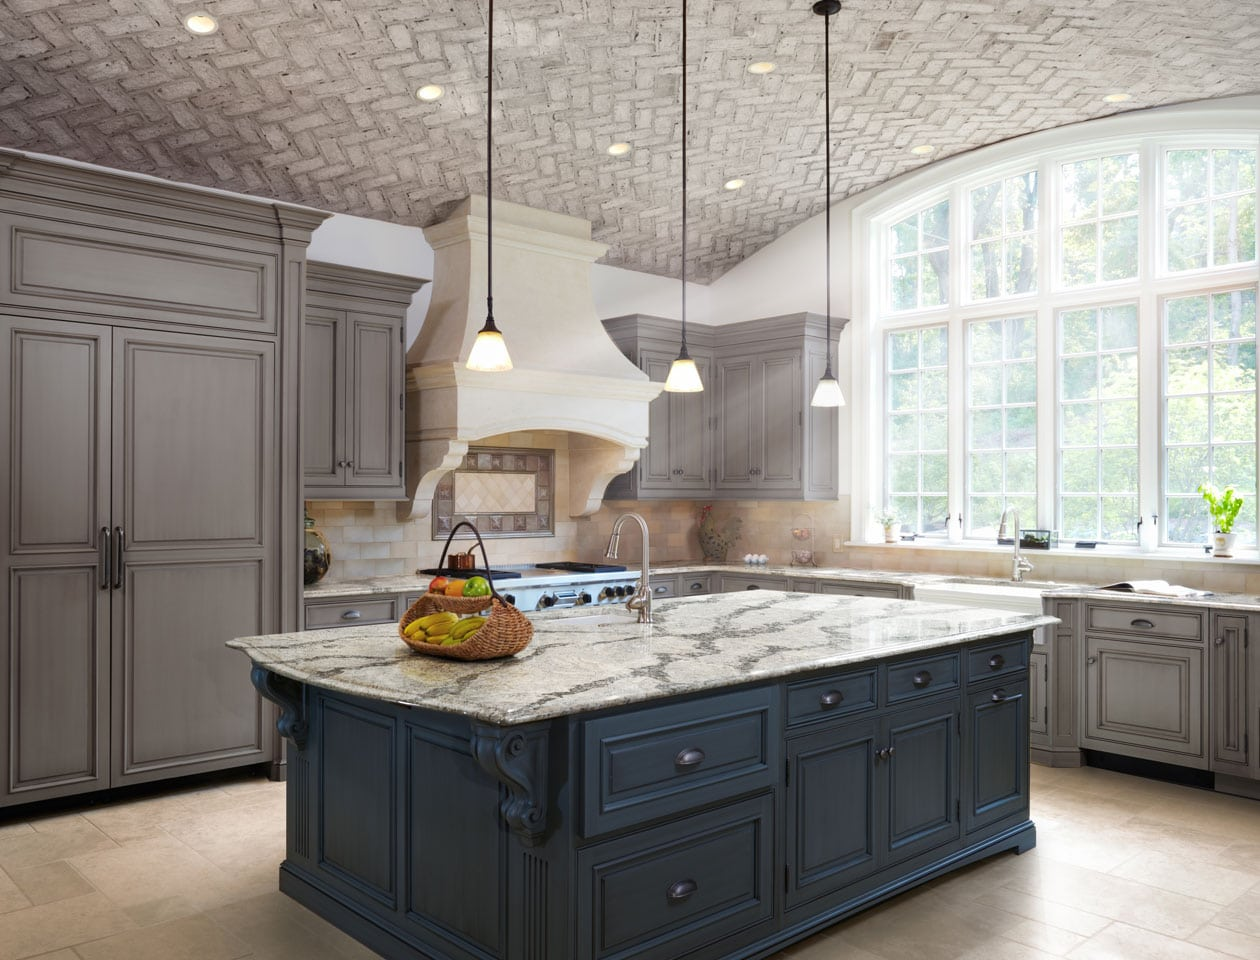 natural stone counter top and black cabinets